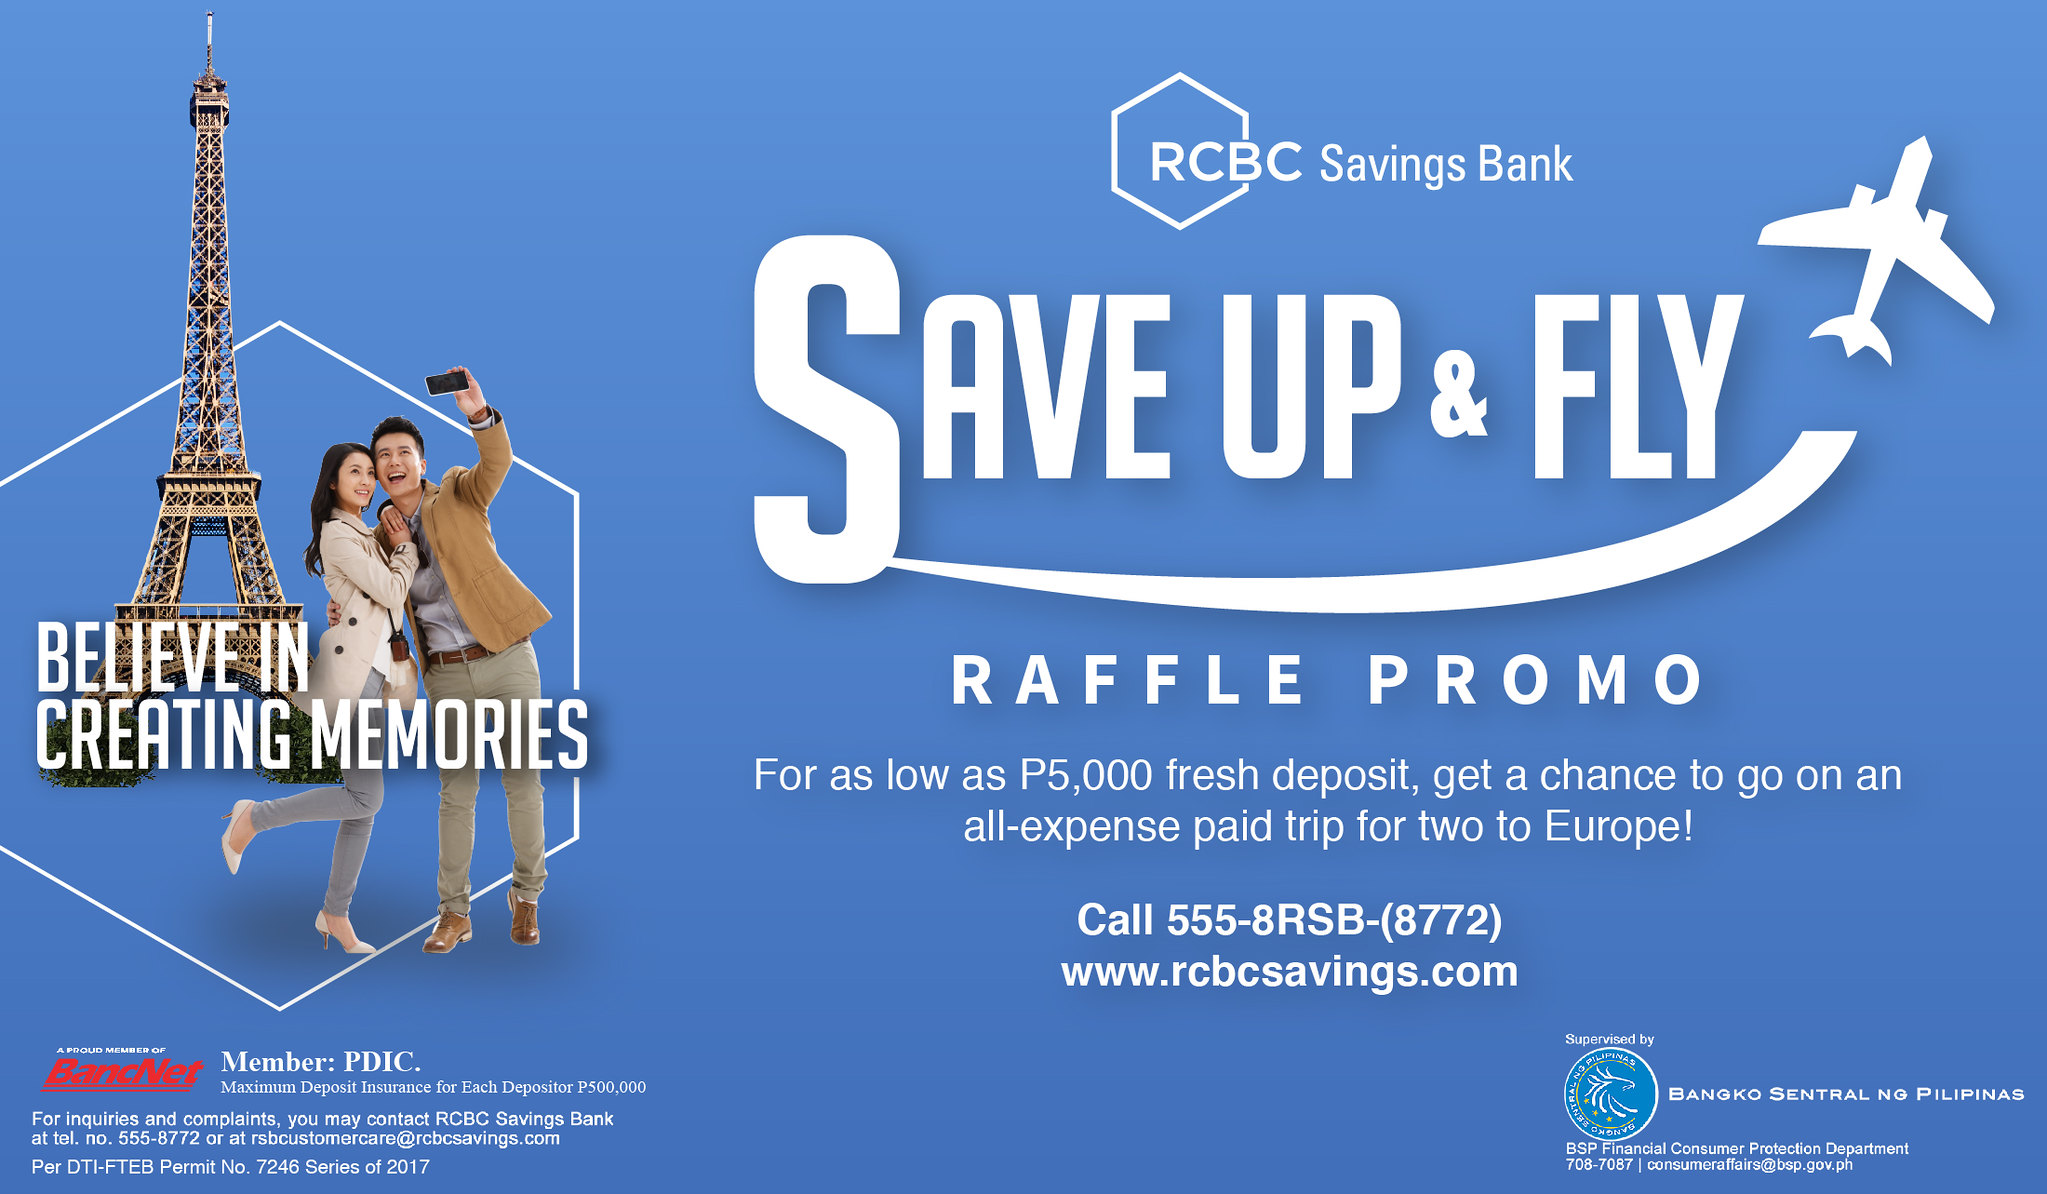 Win a Trip to Europe | RCBC Promo Save Up & Fly